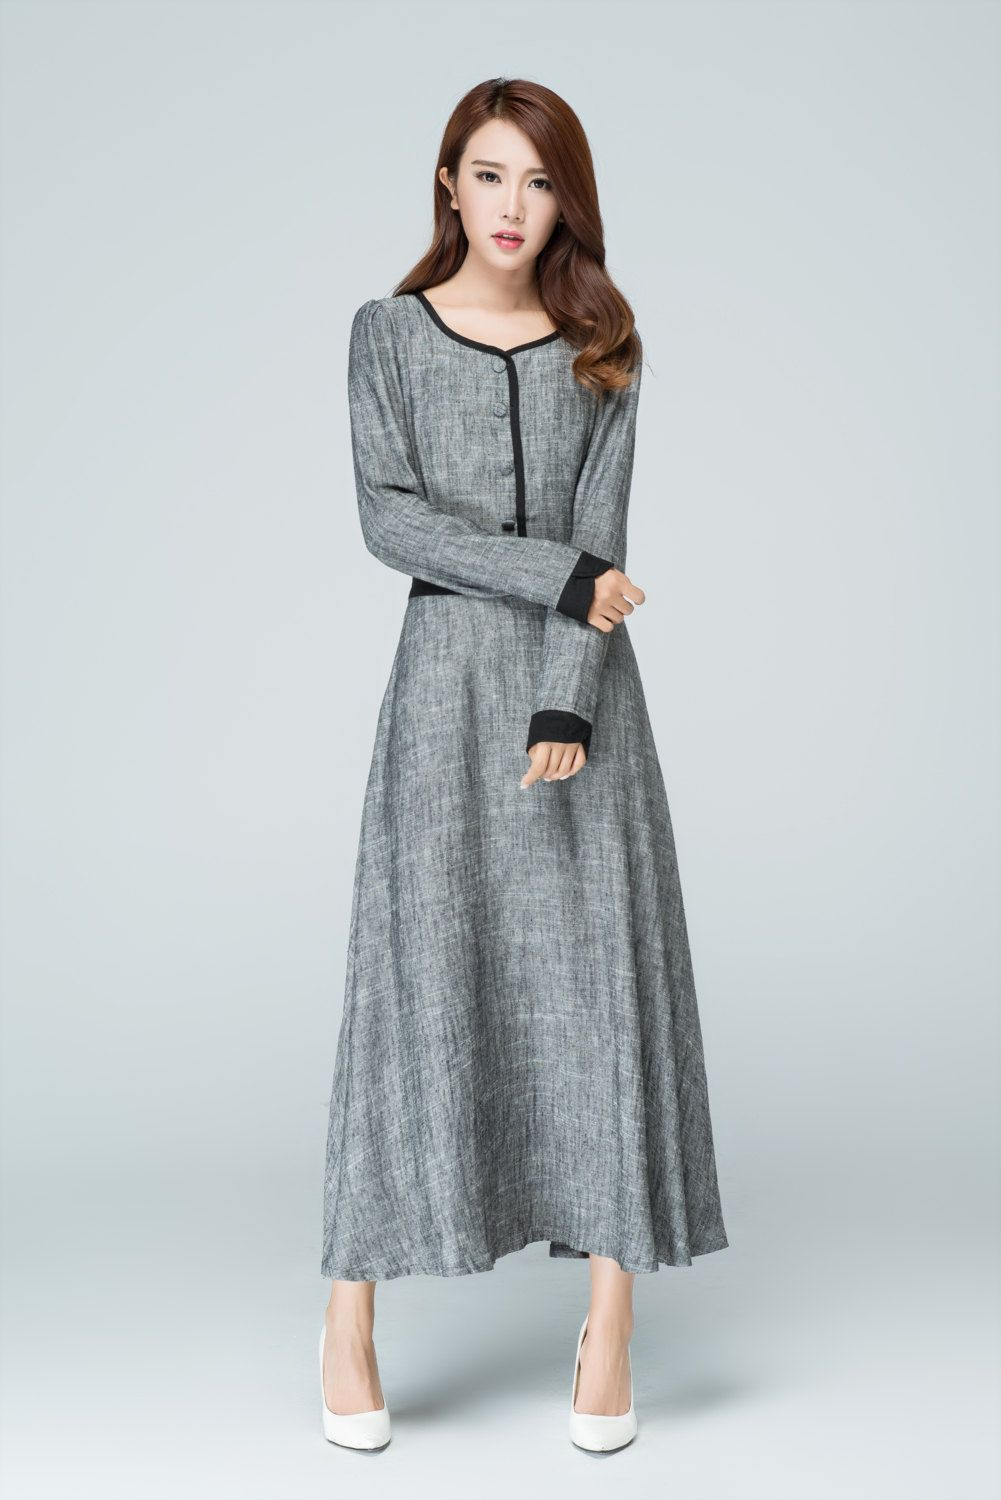 Grey Dresslinen Dressmaxi Dressevening Dressfit And Flare Elegant Dresses For Women Long Sleeve Dresses Fall Women S Evening Dresses